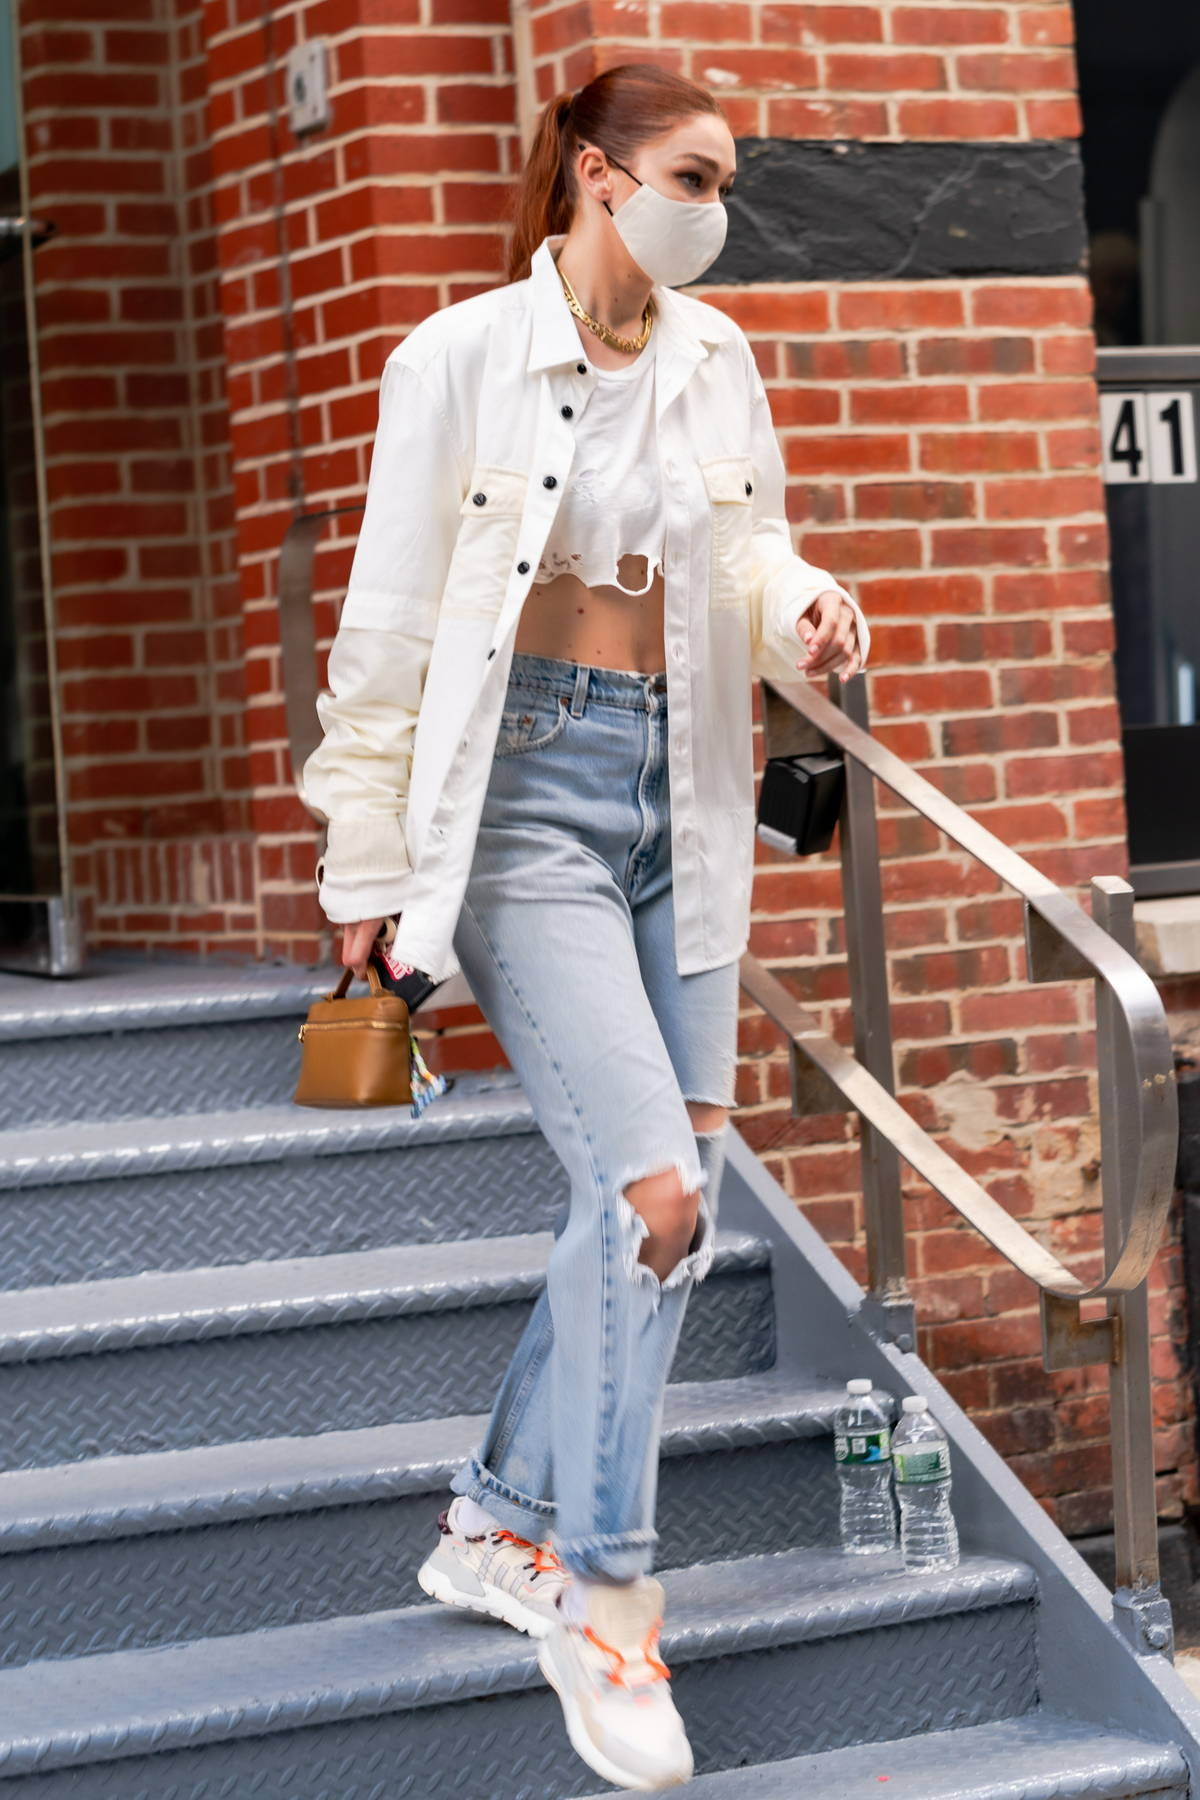 Gigi Hadid looks trendy in an unbuttoned white shirt with a crop top with ripped jeans while heading out in New York City